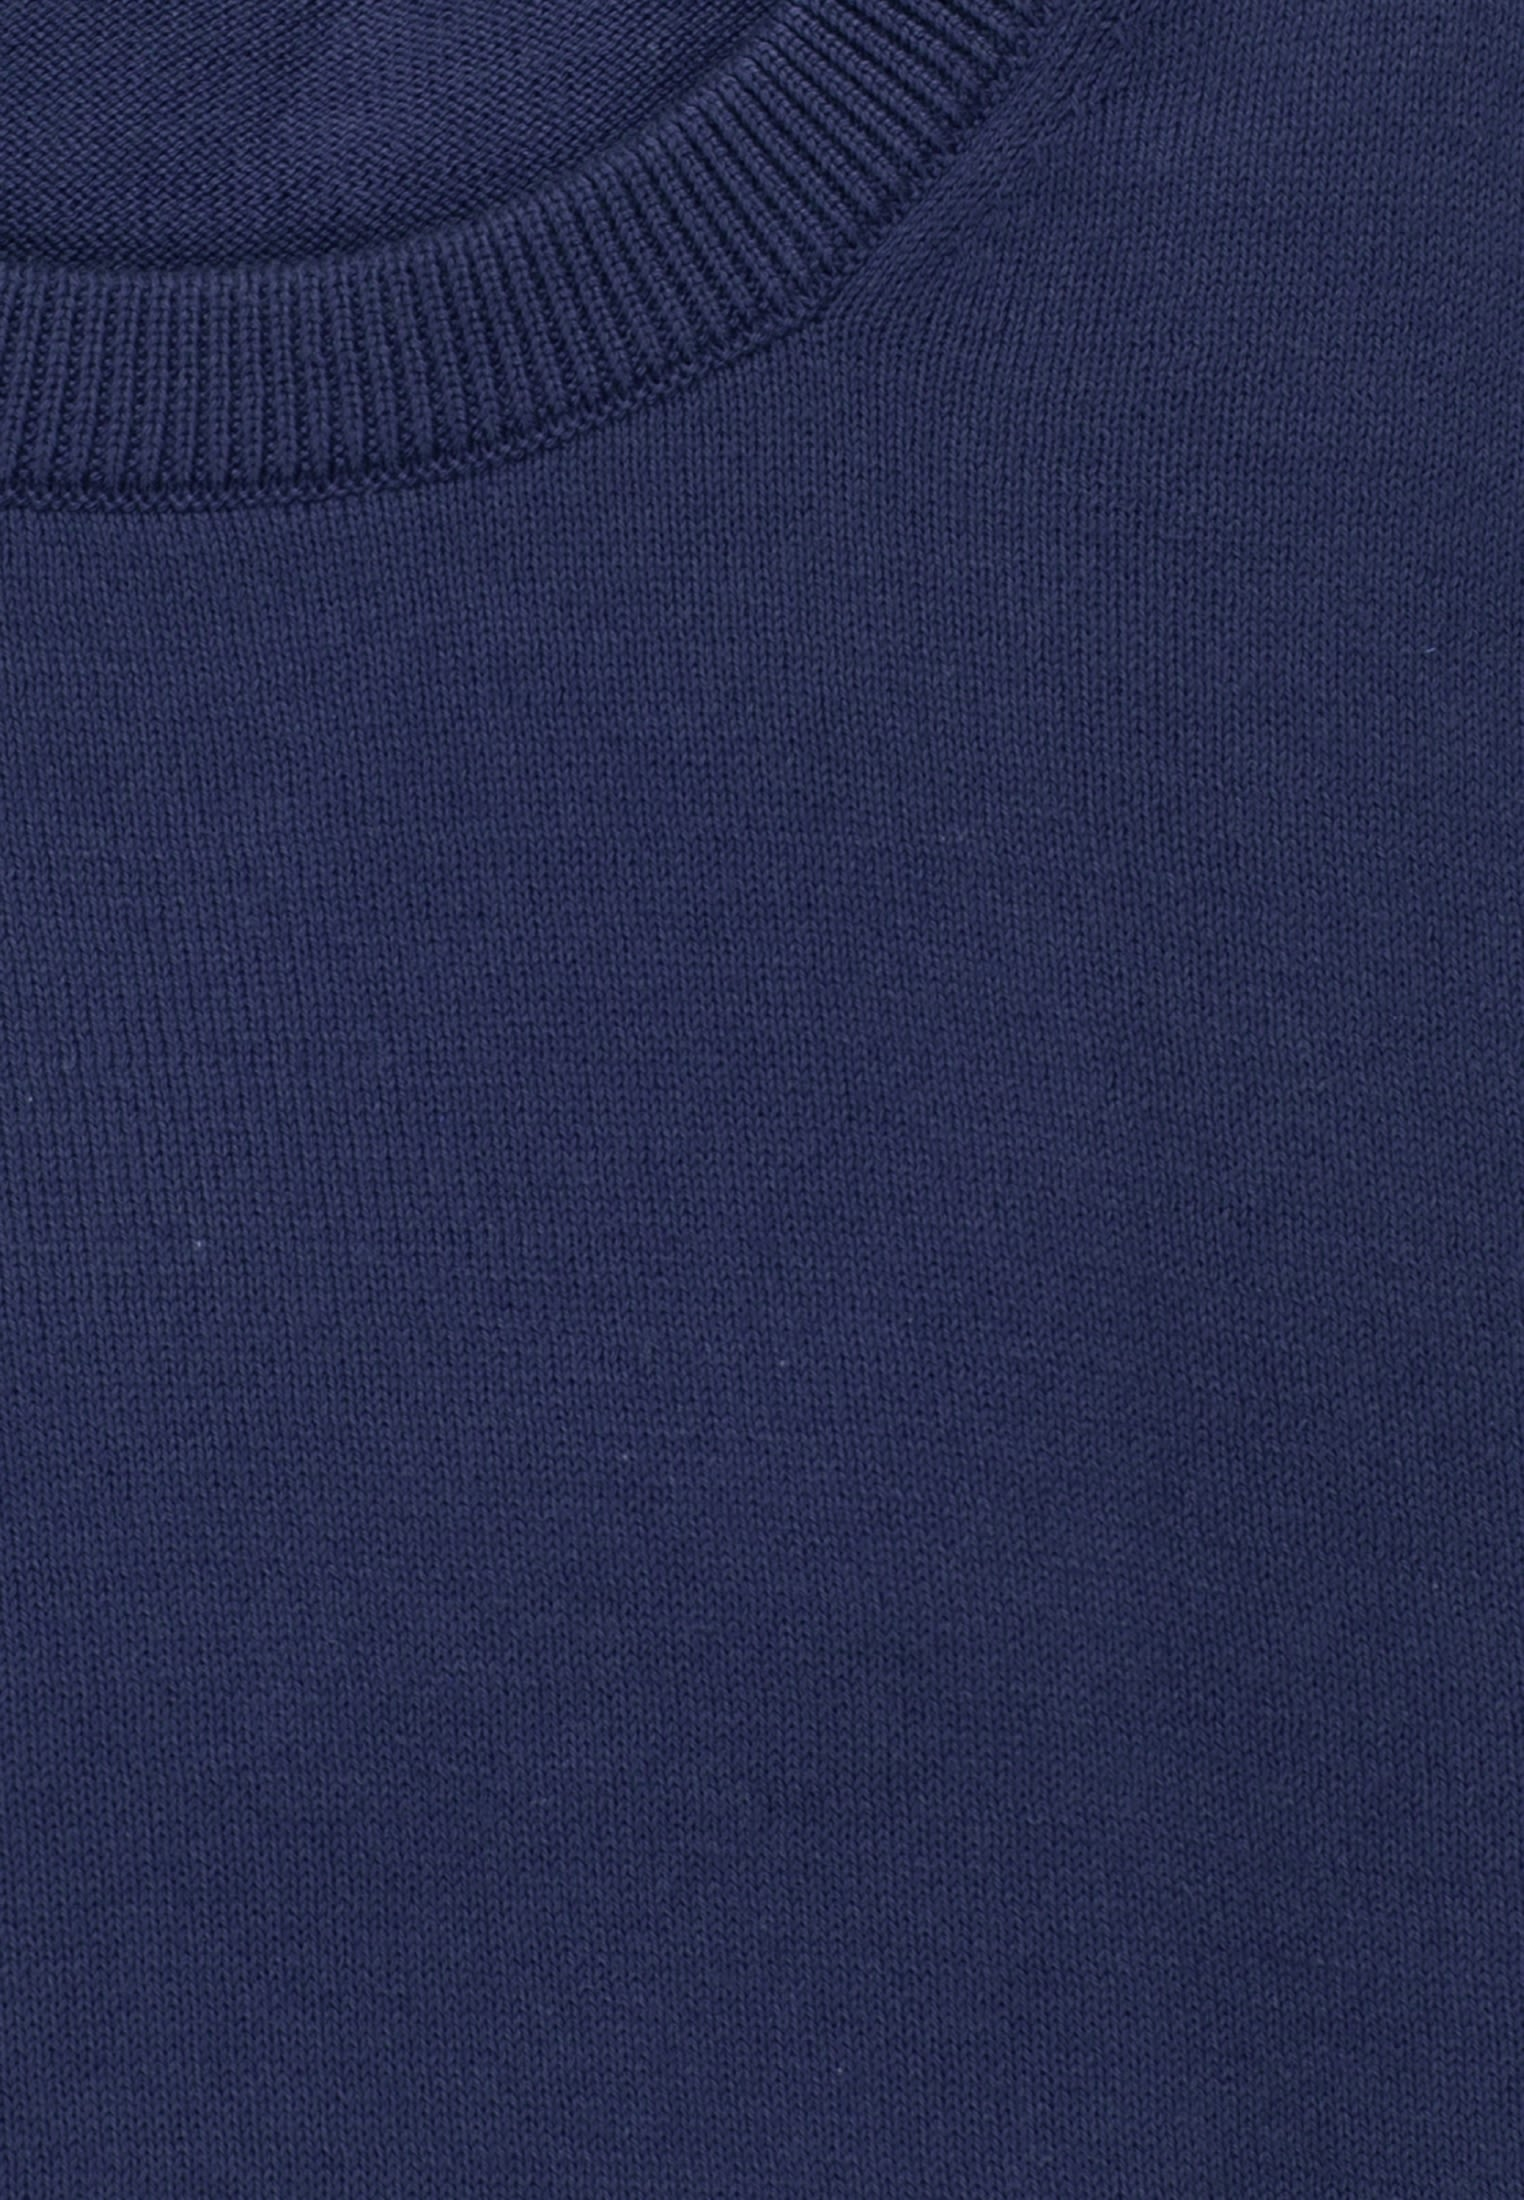 Crew Neck Pullover made of 100% Cotton in royal |  Seidensticker Onlineshop